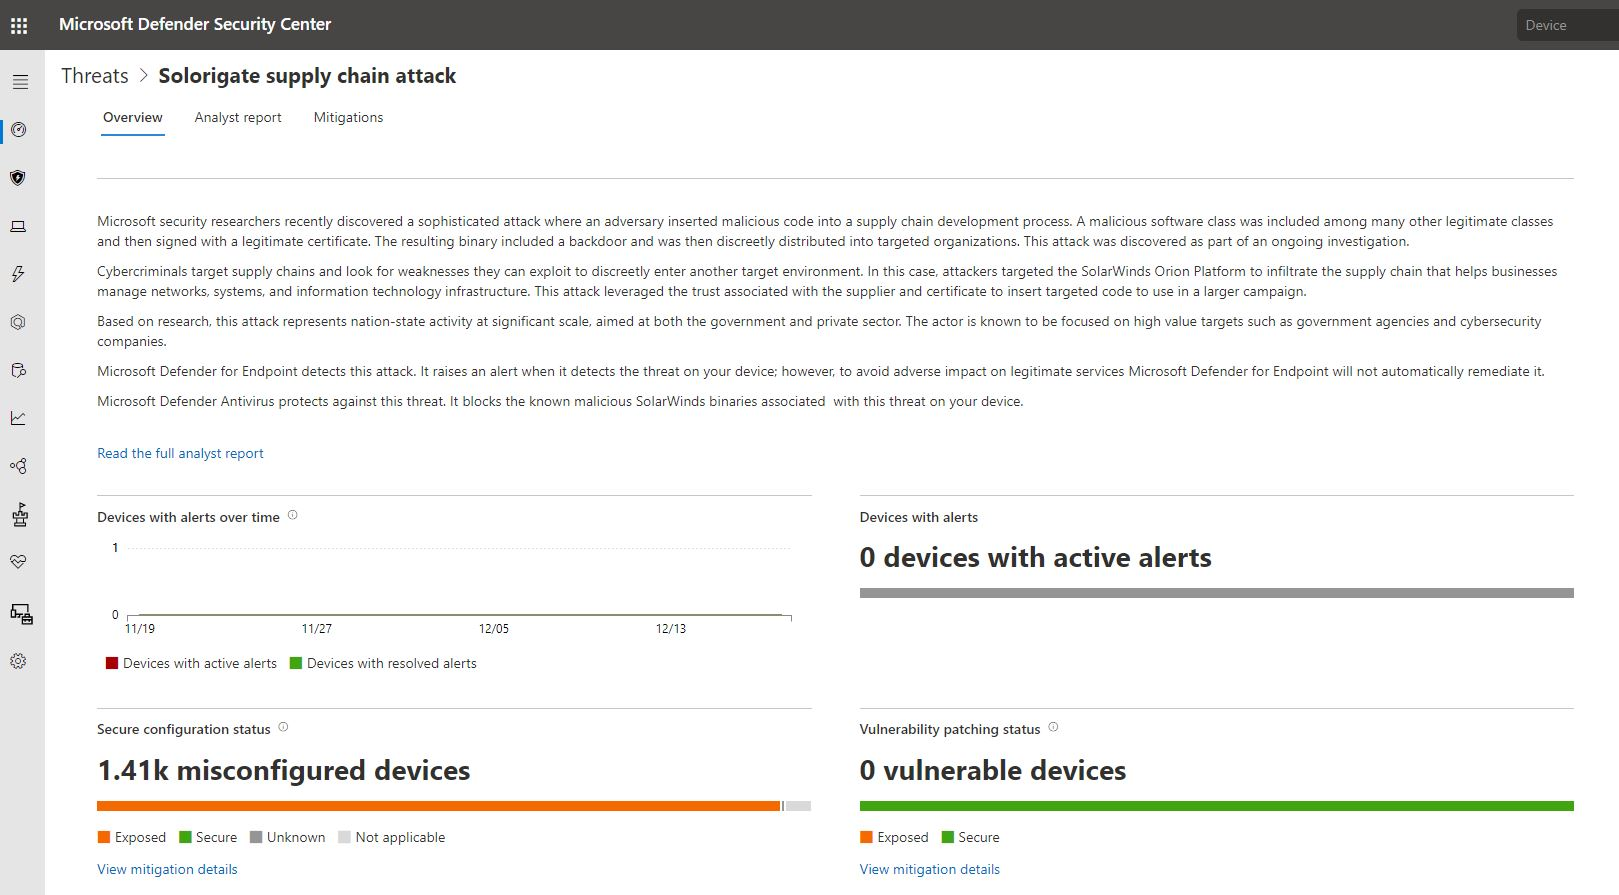 Screenshot of threat analytics report on Soloriage in Microsoft Defender Security Center